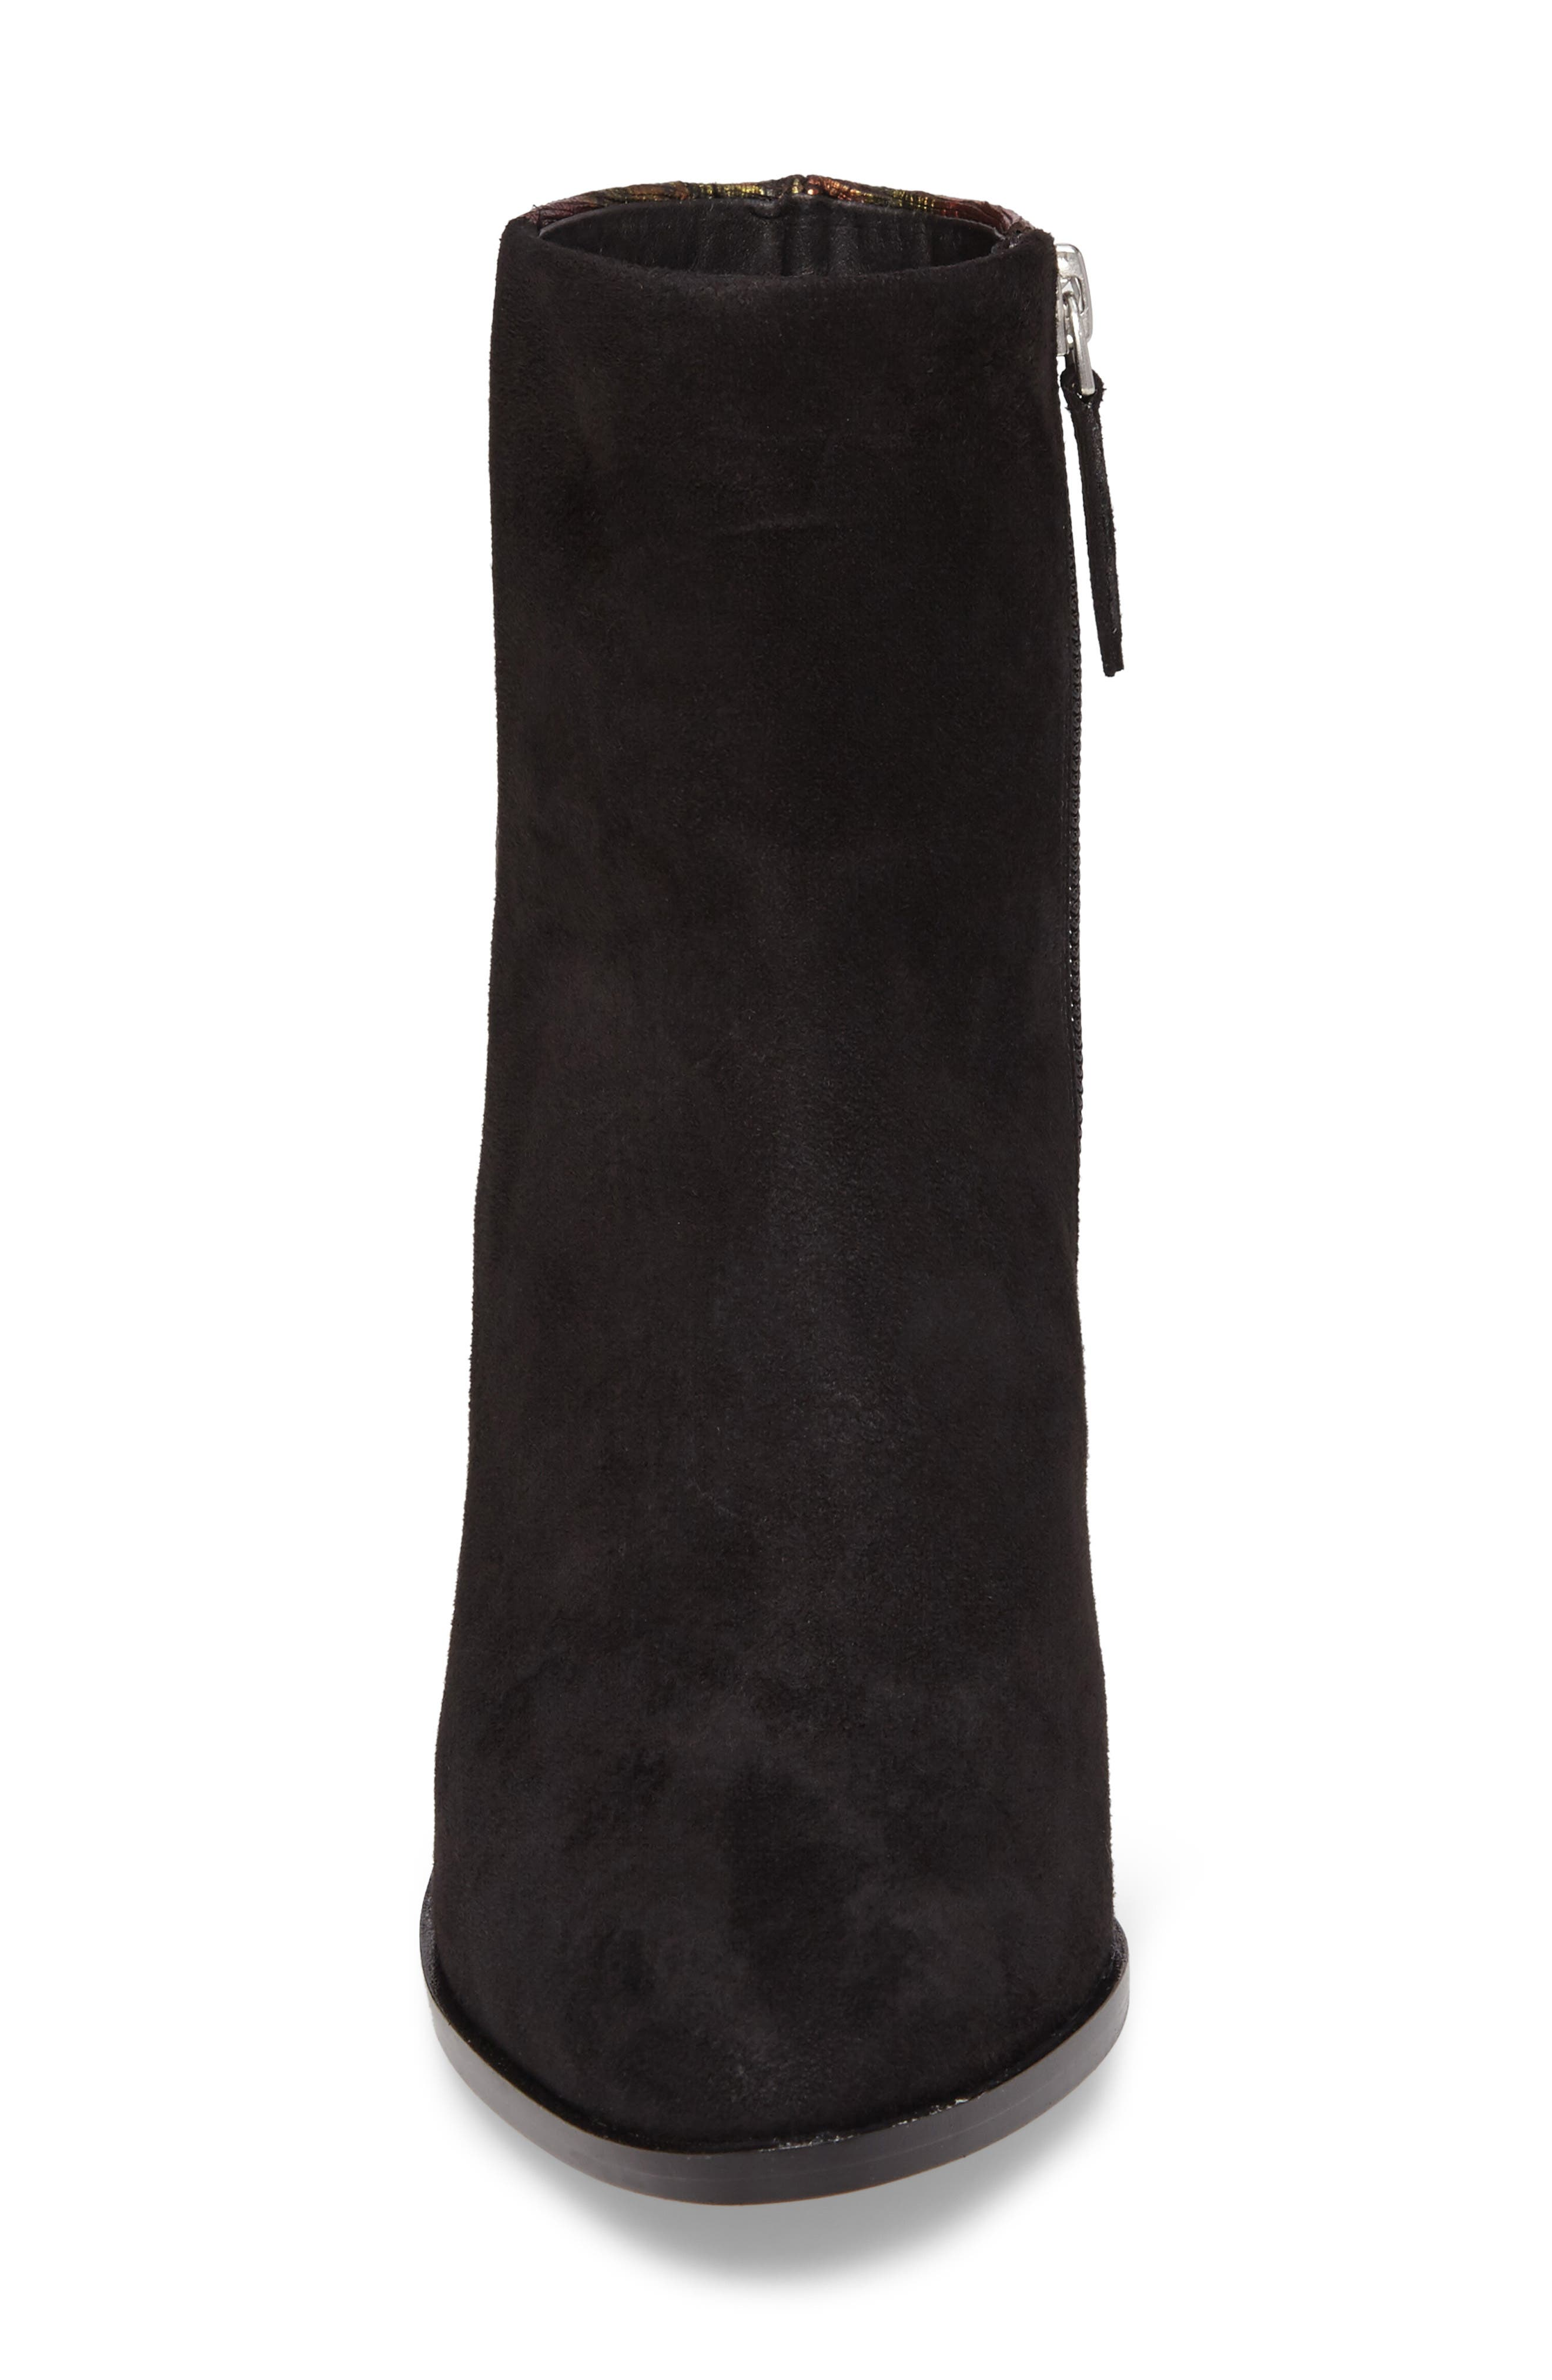 Brady Embellished Boot,                             Alternate thumbnail 4, color,                             Black/ Red Suede